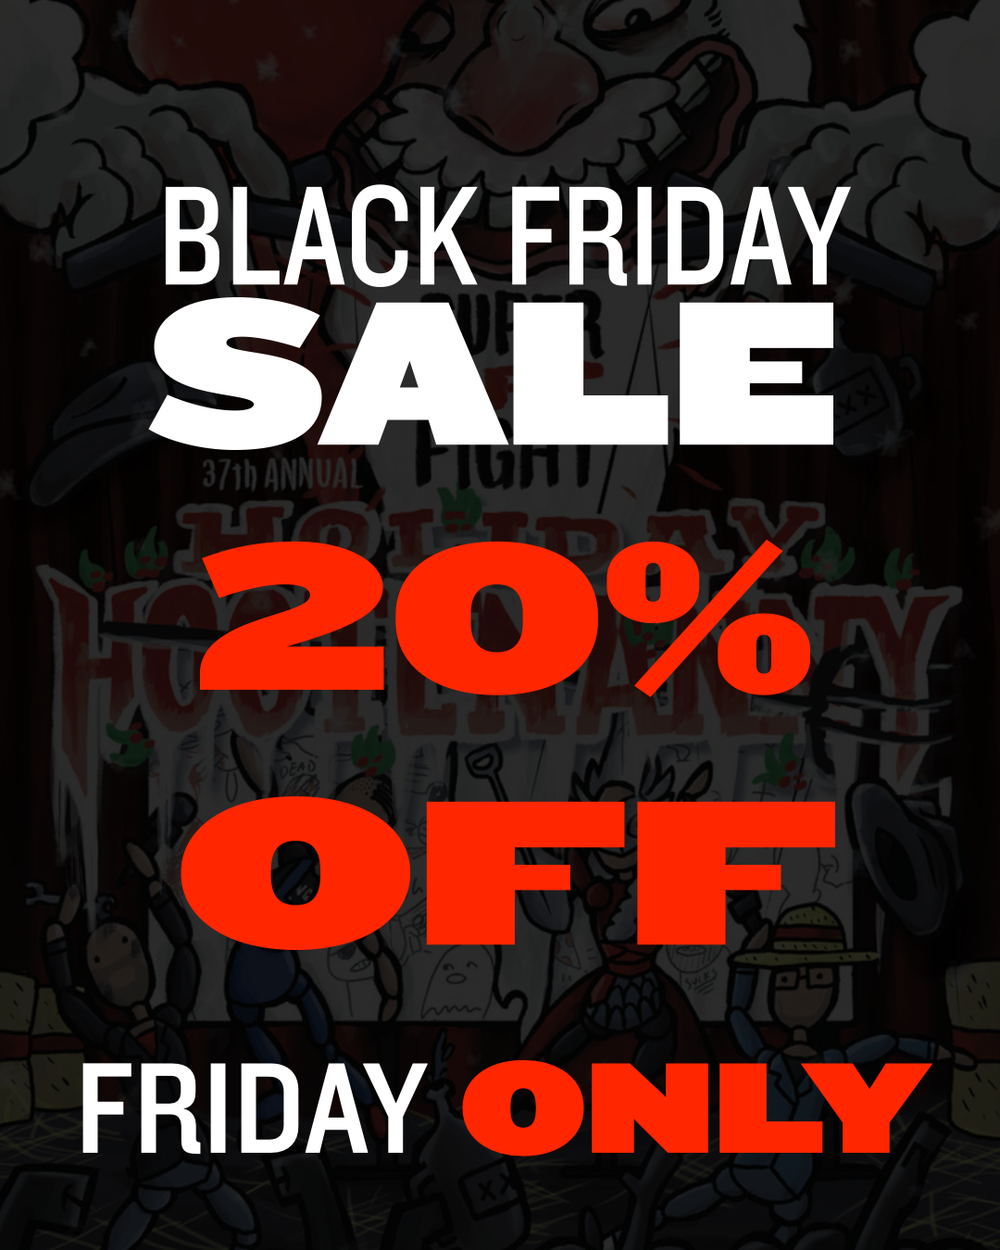 Black-Friday-2018-Promo.png